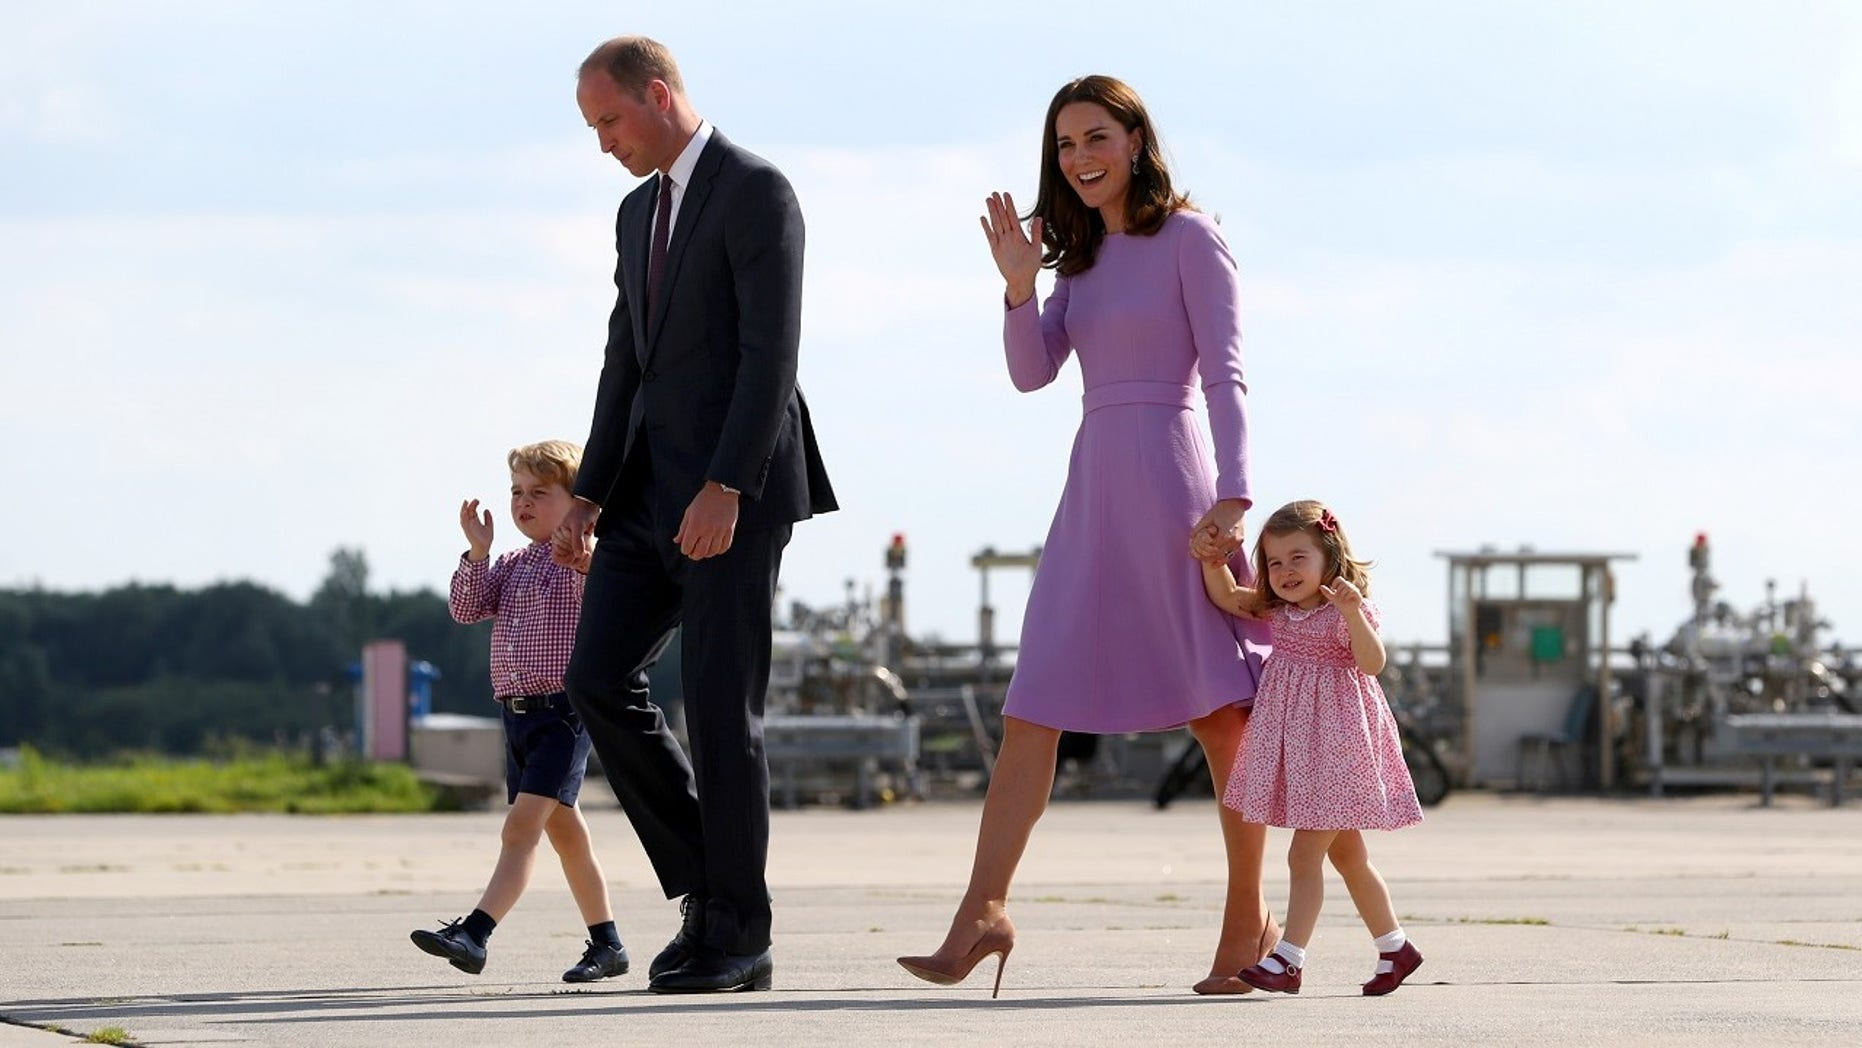 Kate Middleton revealed Prince William also struggled with fatherhood when he became a parent.